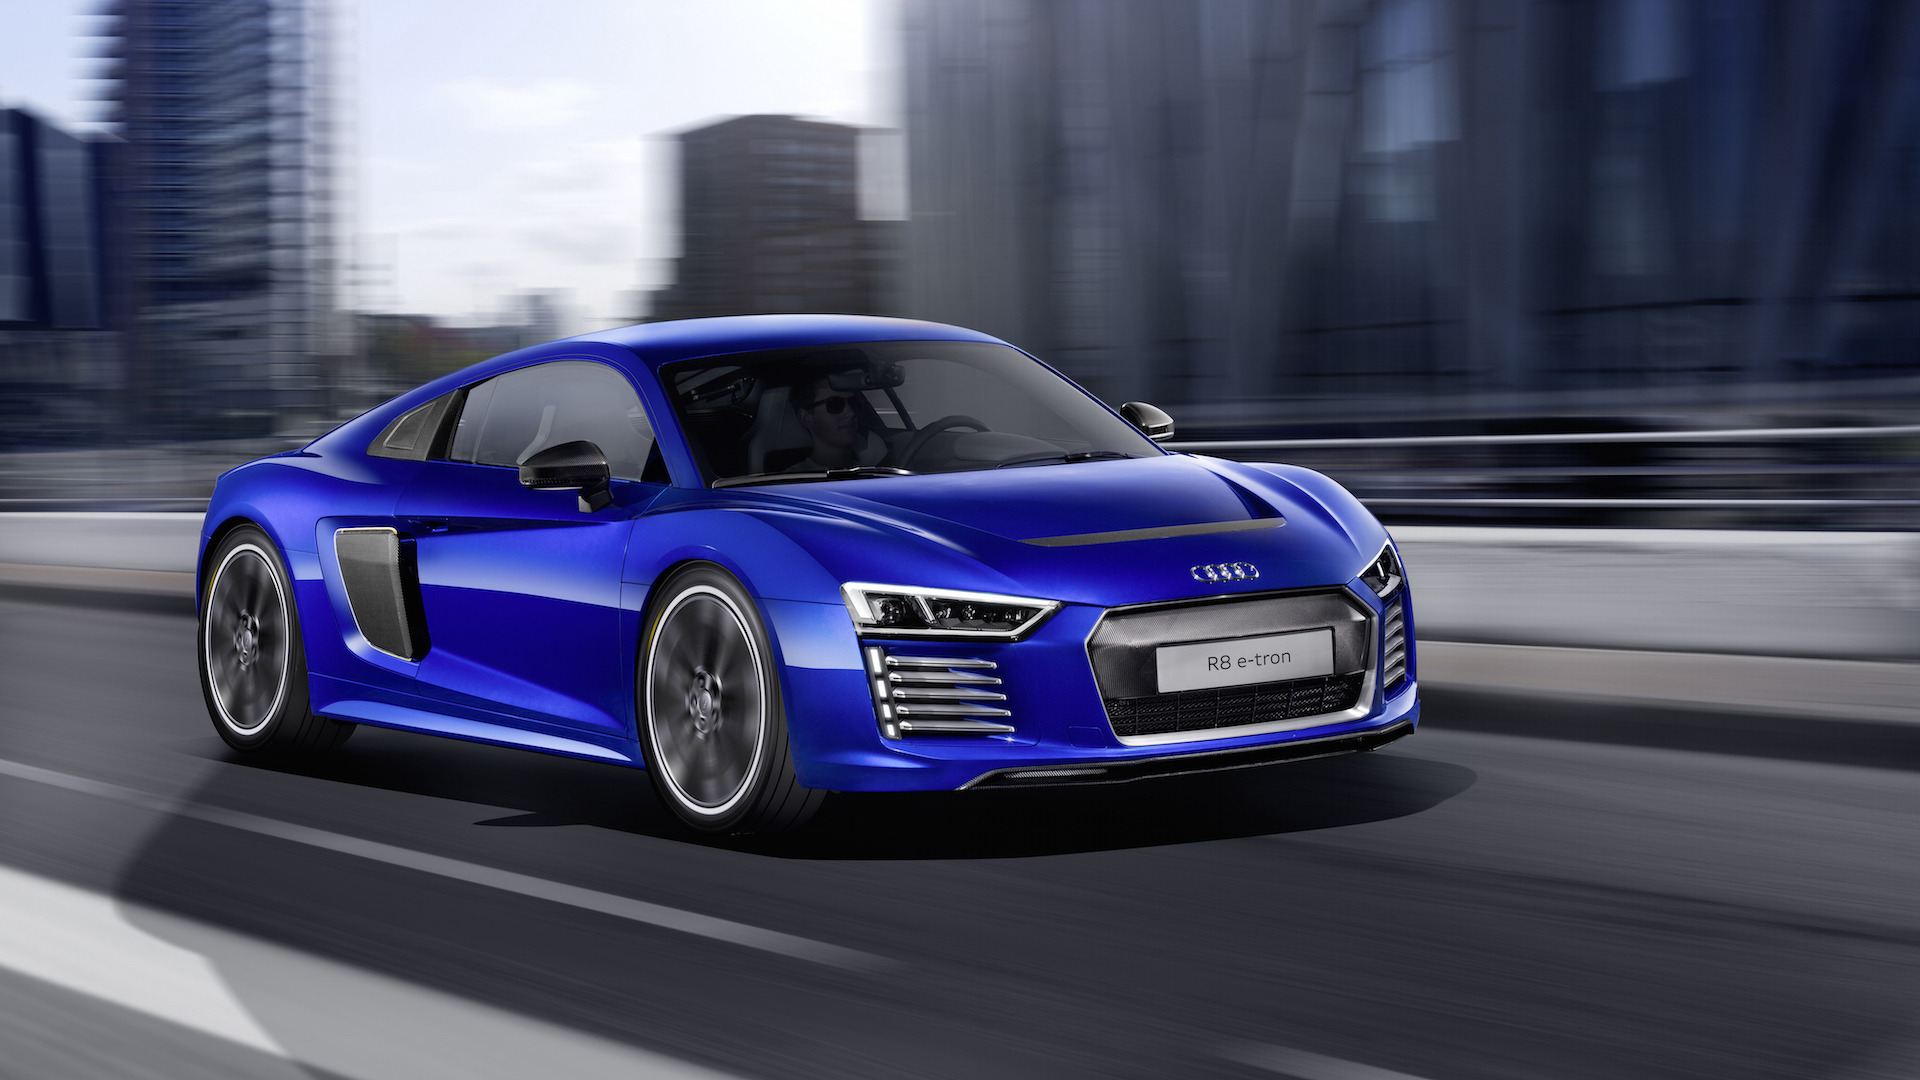 NextGeneration Audi R Could Be Only Electric And Pack HP - Audi r8 etron